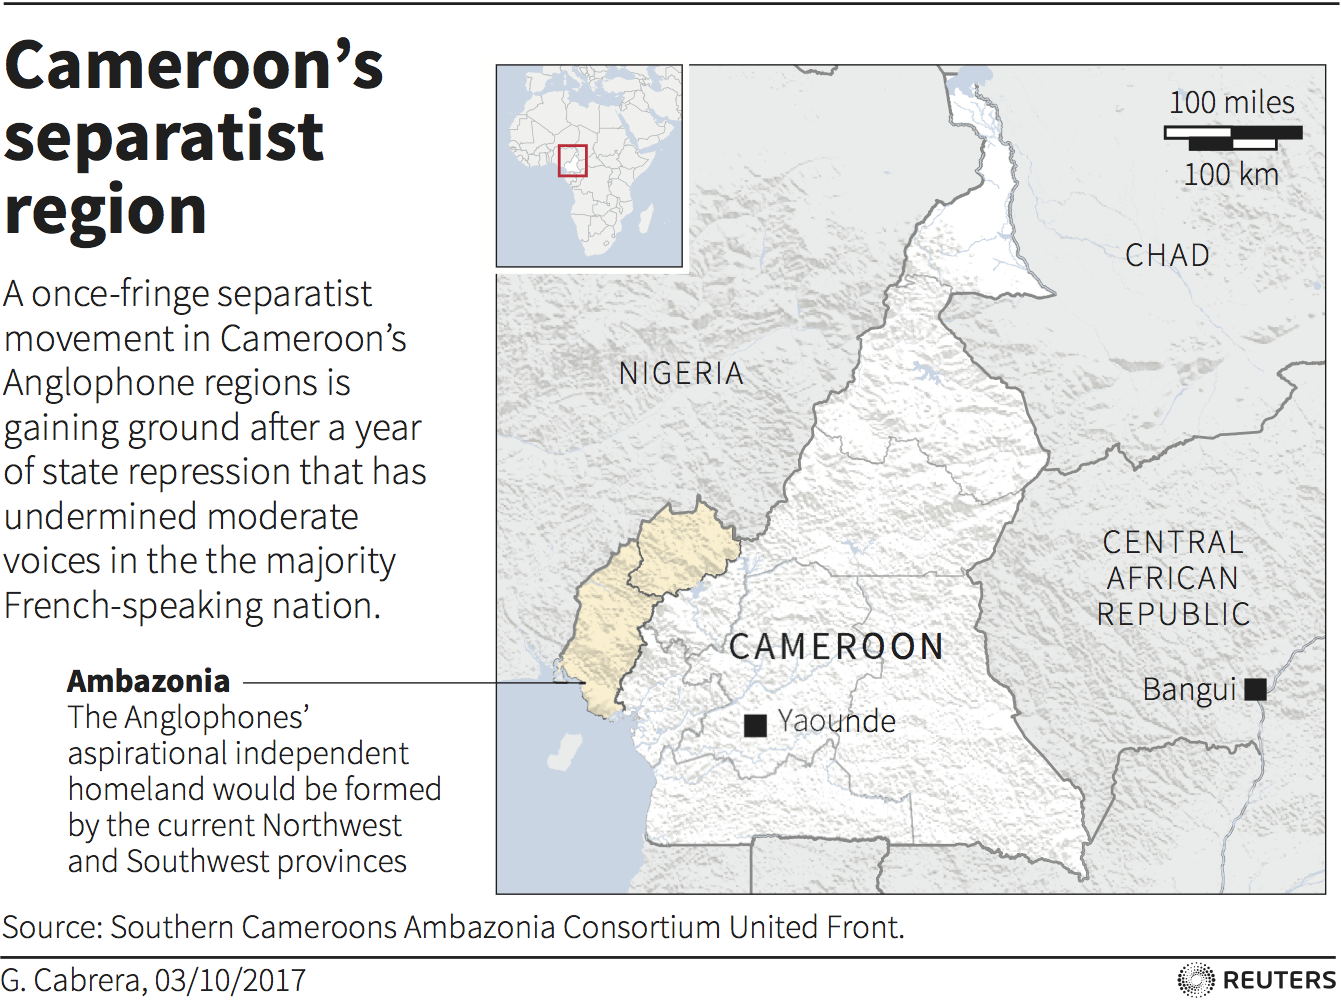 Cameroon's Anglophone crisis is being ignored by US, China